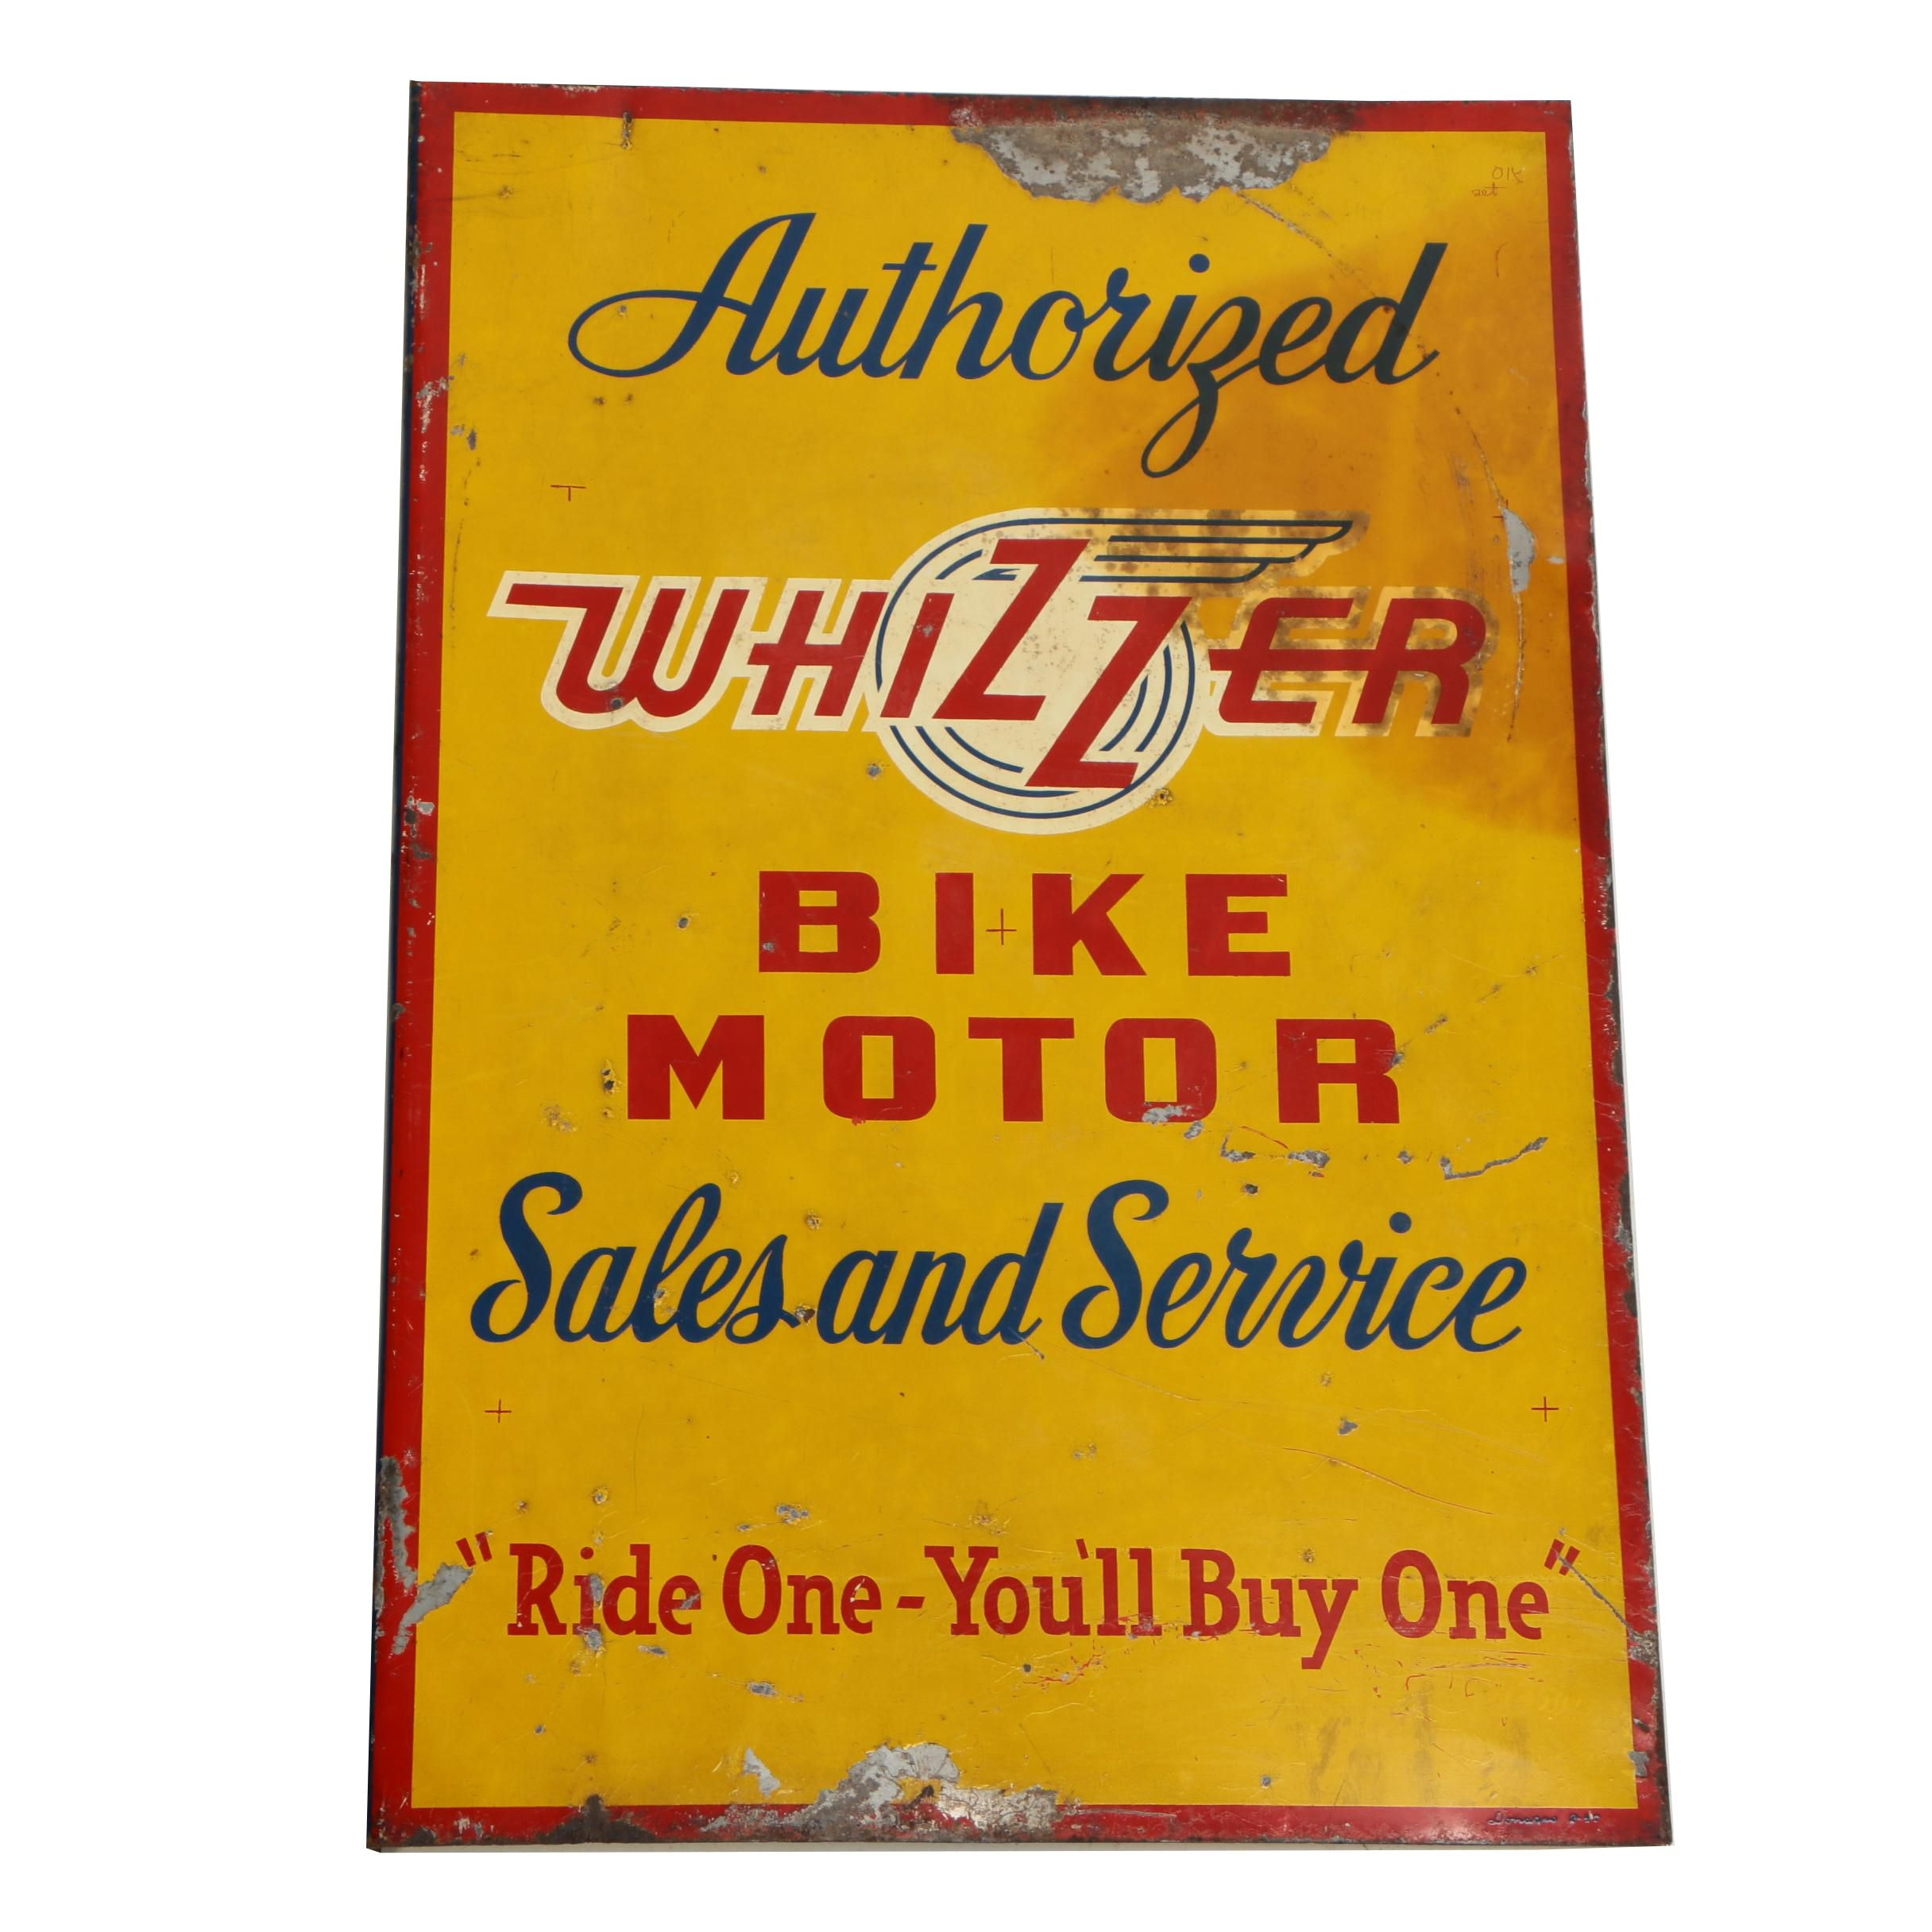 Whizzer Bike Motors Double Sided Enameled Metal Dealership Sign by Donases, 1947